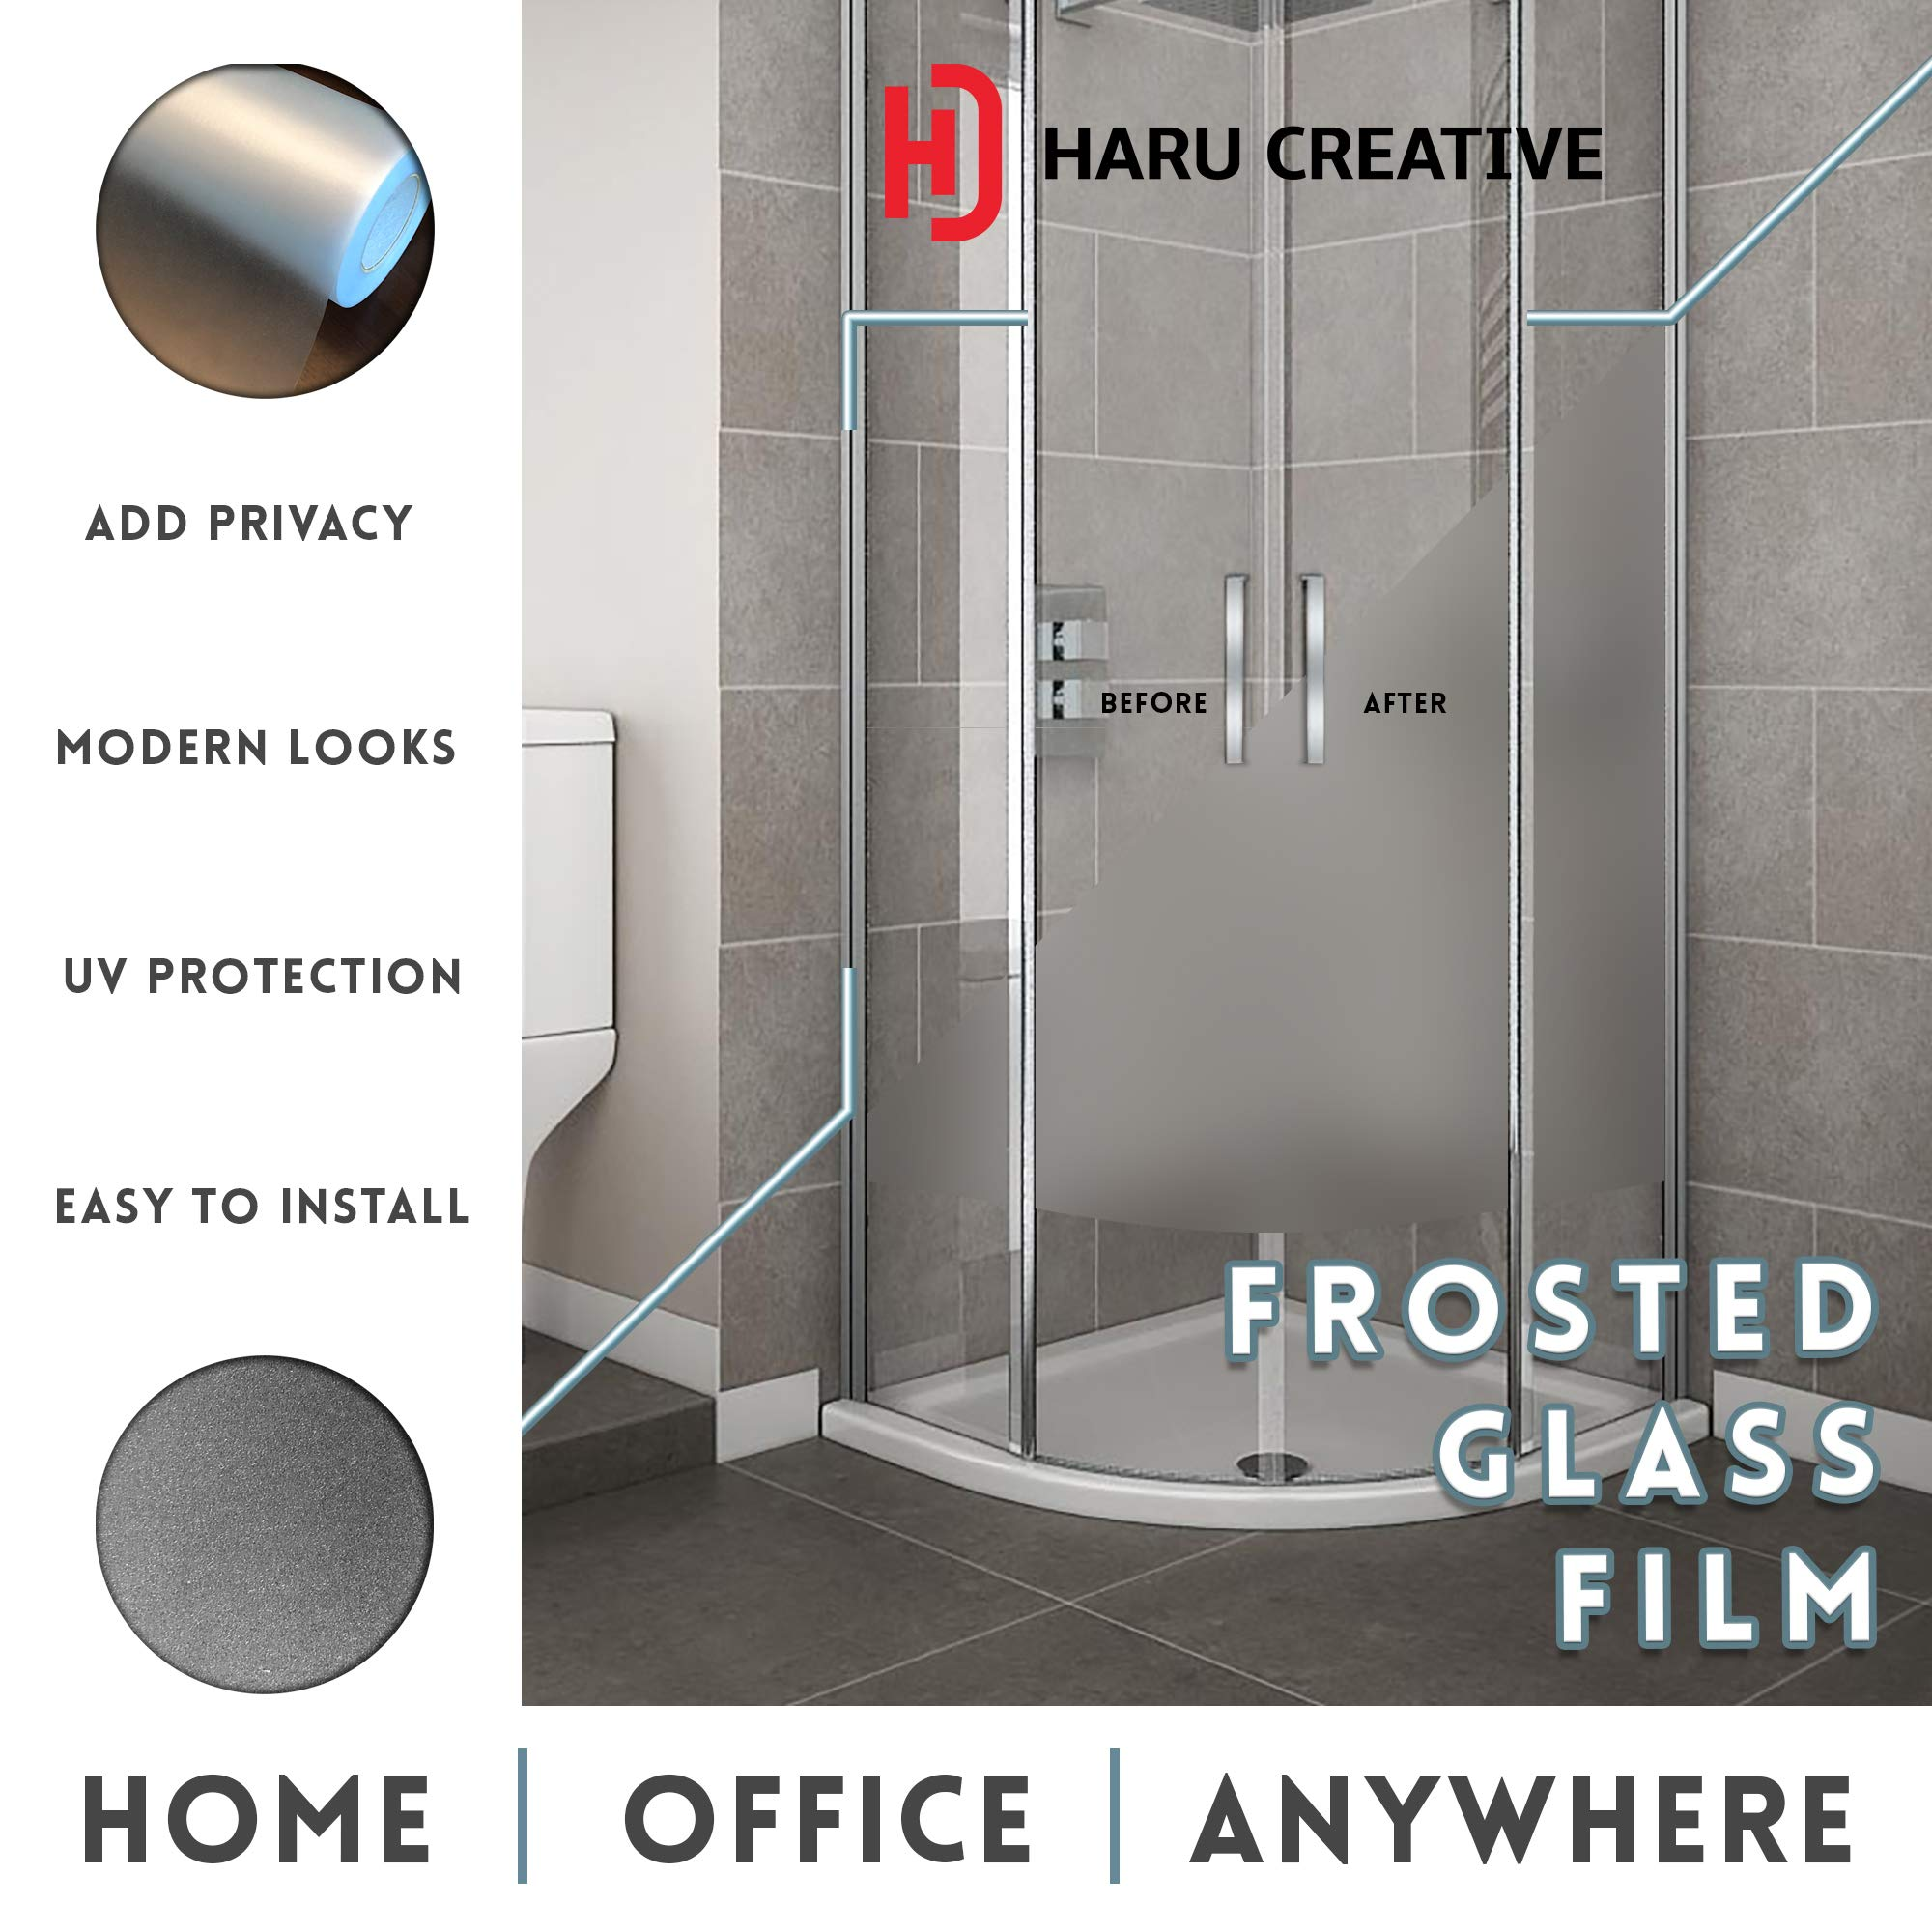 Haru Creative - Privacy Decorative Window Glass Frost Static Cling Adhesive Reusable Film Vinyl for Home Rooms Bathroom Work Space Office - Winter Frosted White Color (4FT x 10FT) by Haru (Image #6)